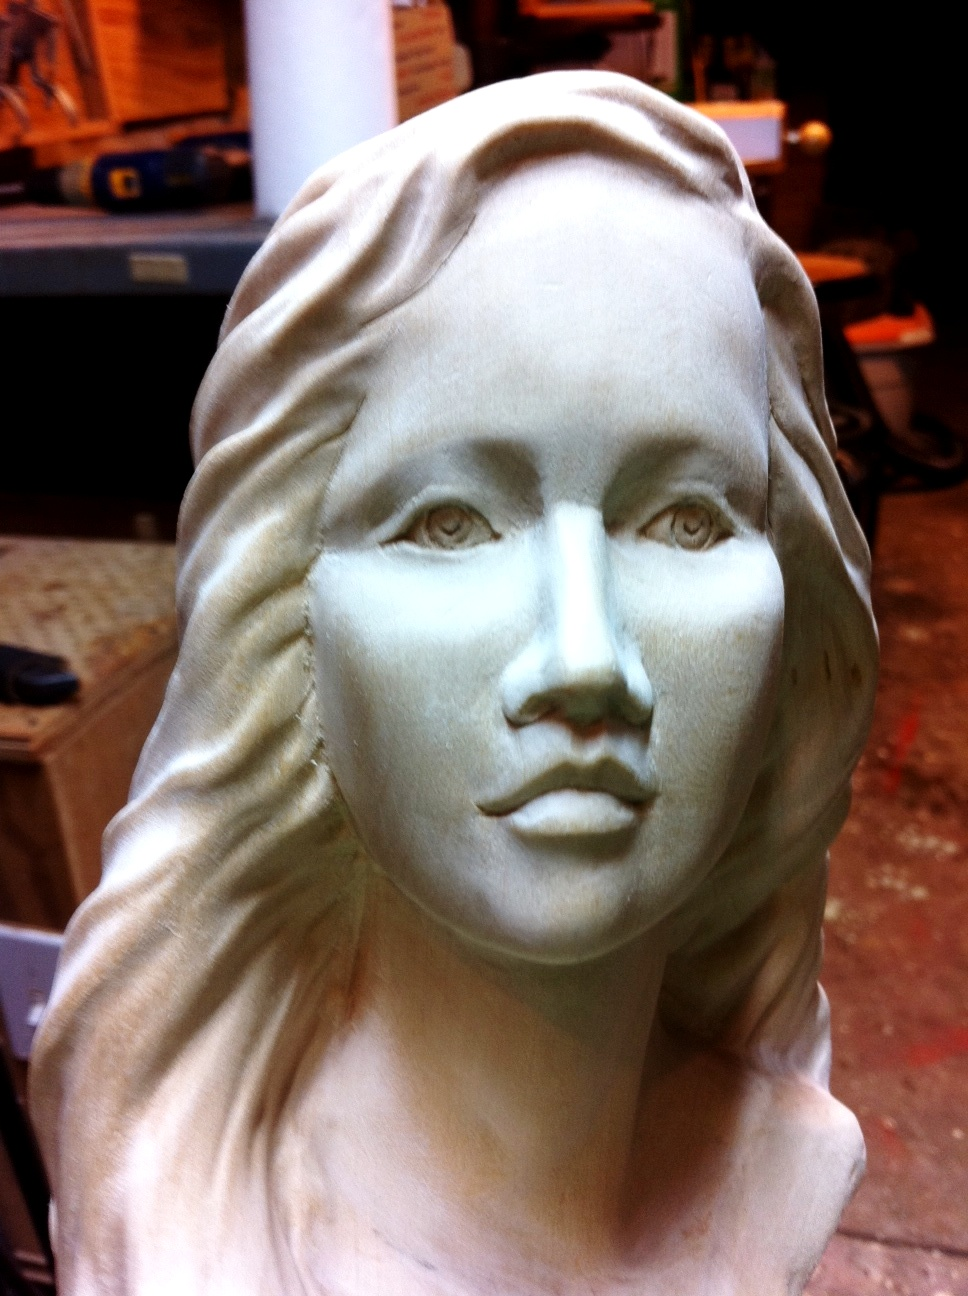 Mike pounders wood carving behind blue eyes progress